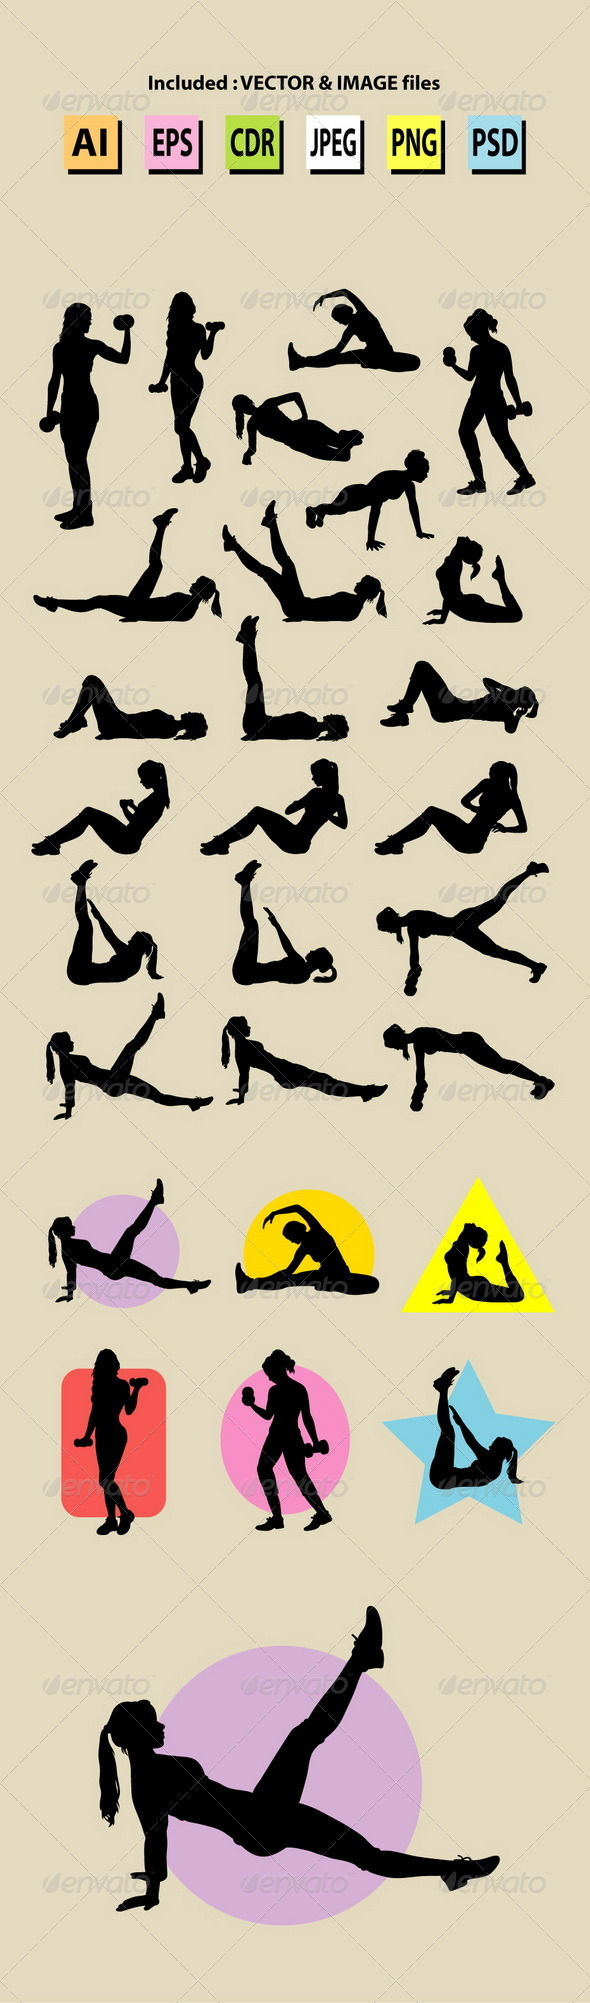 Female Sport Training Silhouettes - Sports/Activity Conceptual